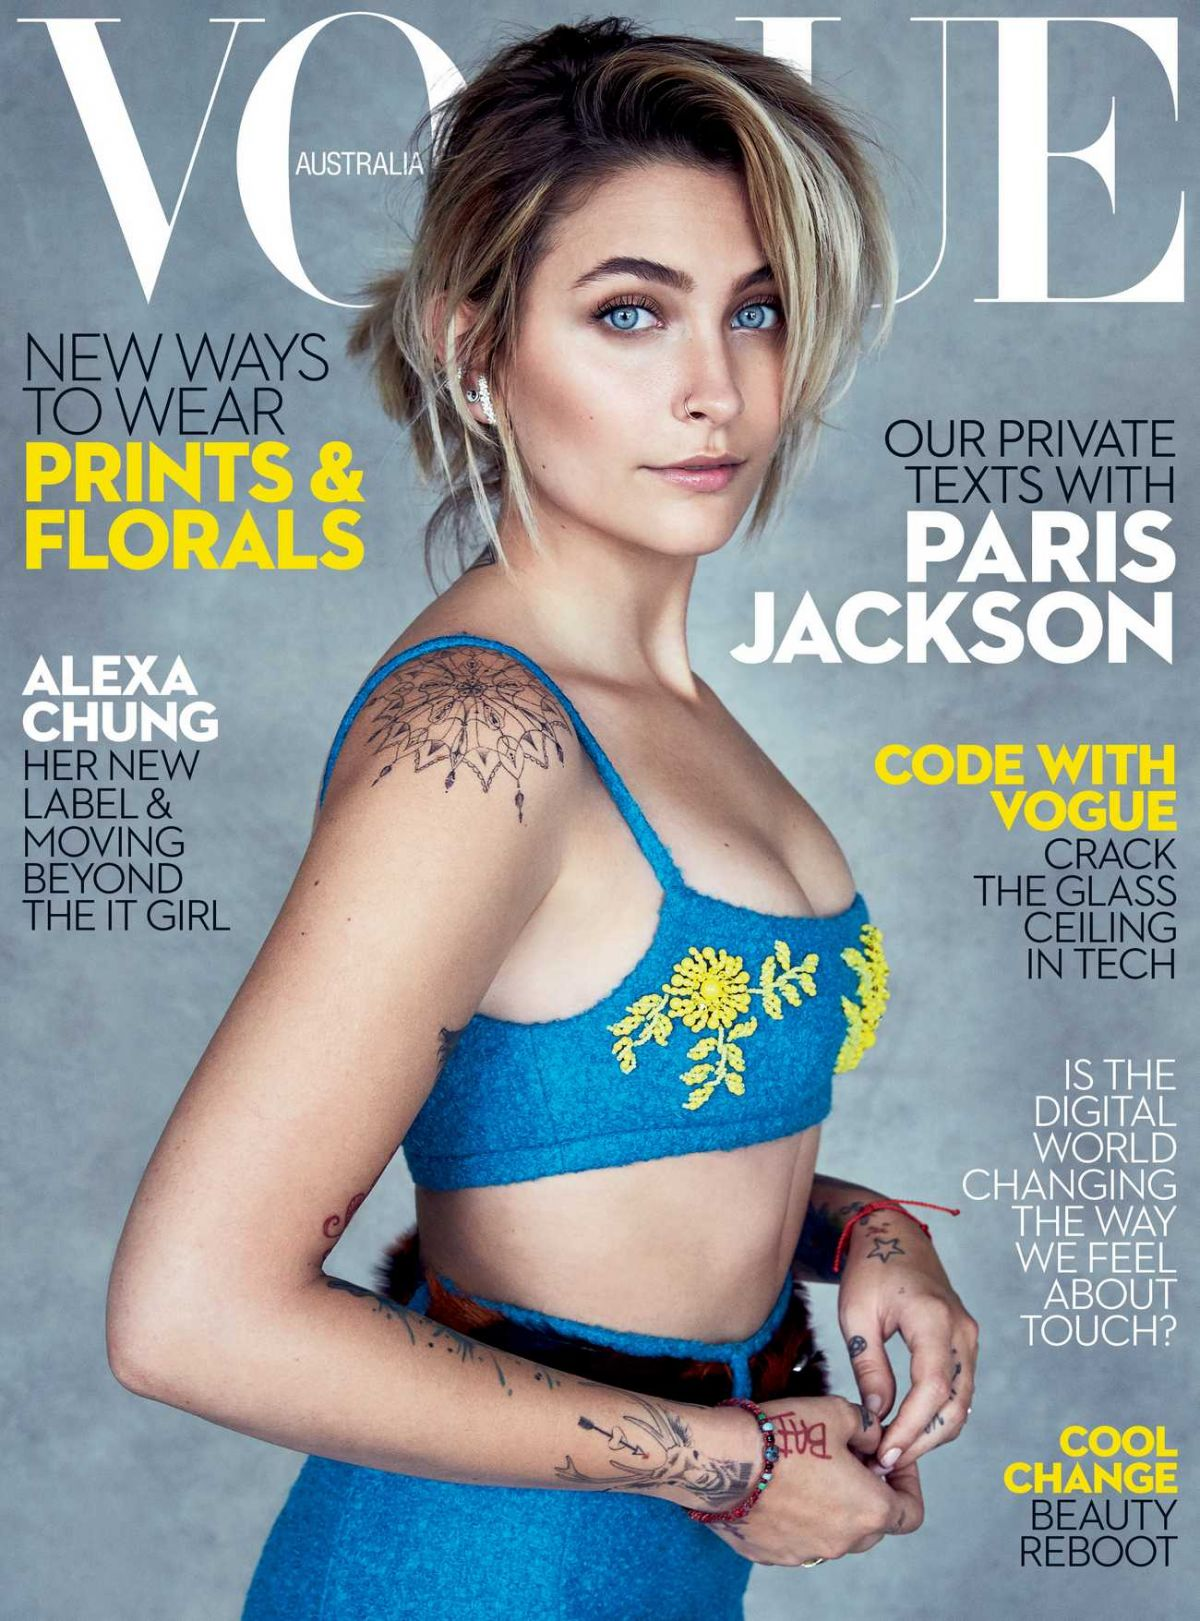 PARIS JACKSON for Vogue Magazine, Australia July 2017